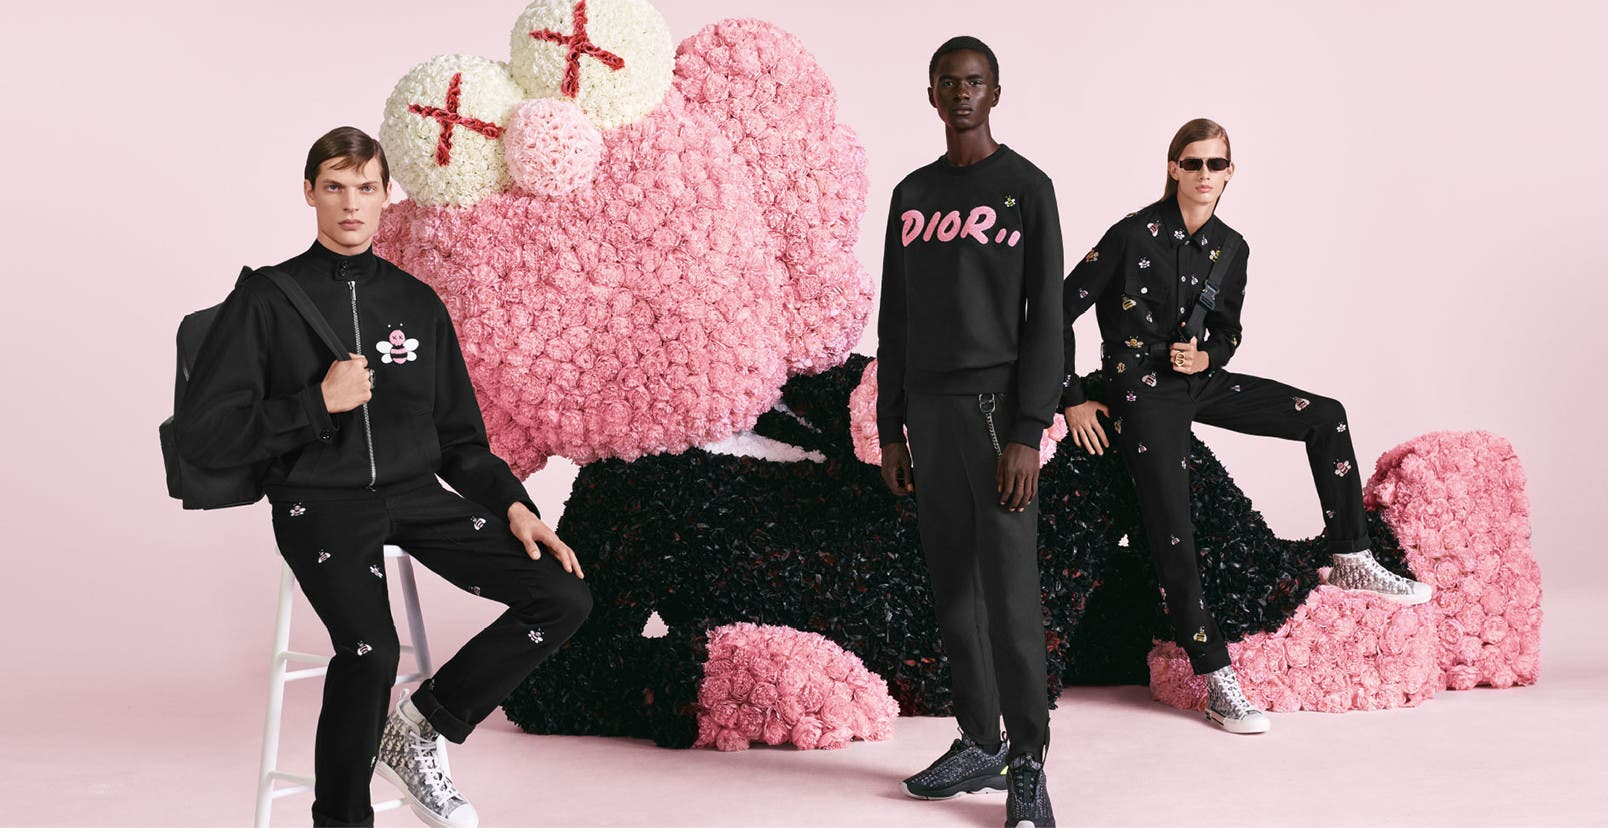 Dior summer 2019 men's collection.